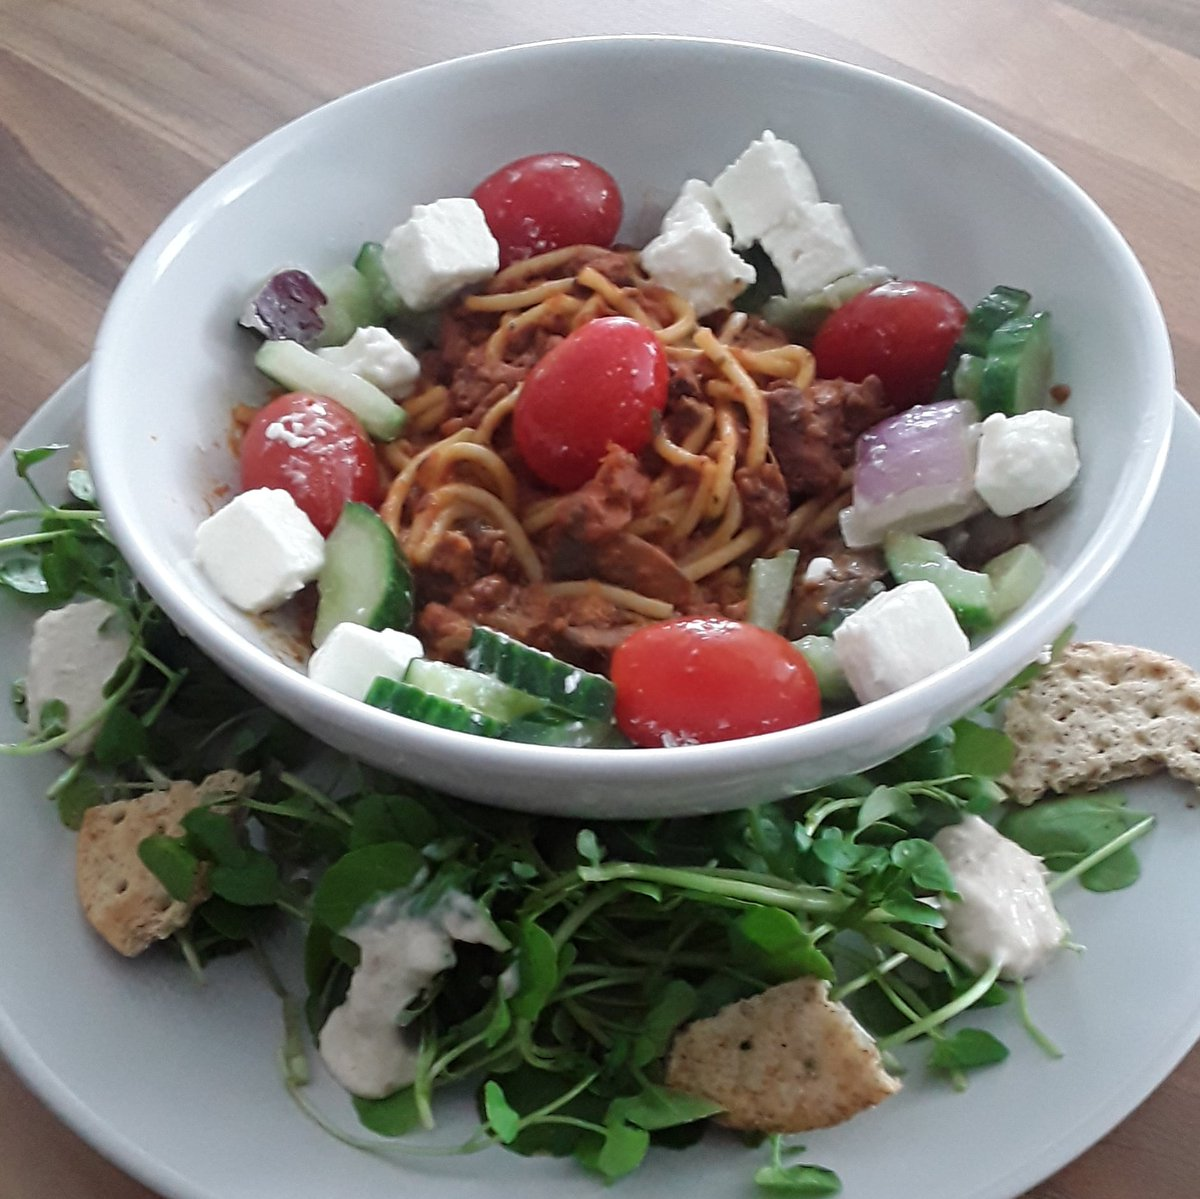 With absence of #restaurants but advent of #kitchen decided to put #culinary skills to use.#Lunch: #PlantKitchen #vegan #SpaghettiBolognese, Greek Salad, Horseradish, #Fresh Watercress, & poppy seed crackers. Thanks to @marksandspencer for ingredients. #LetsGuide #UniquelyLondon